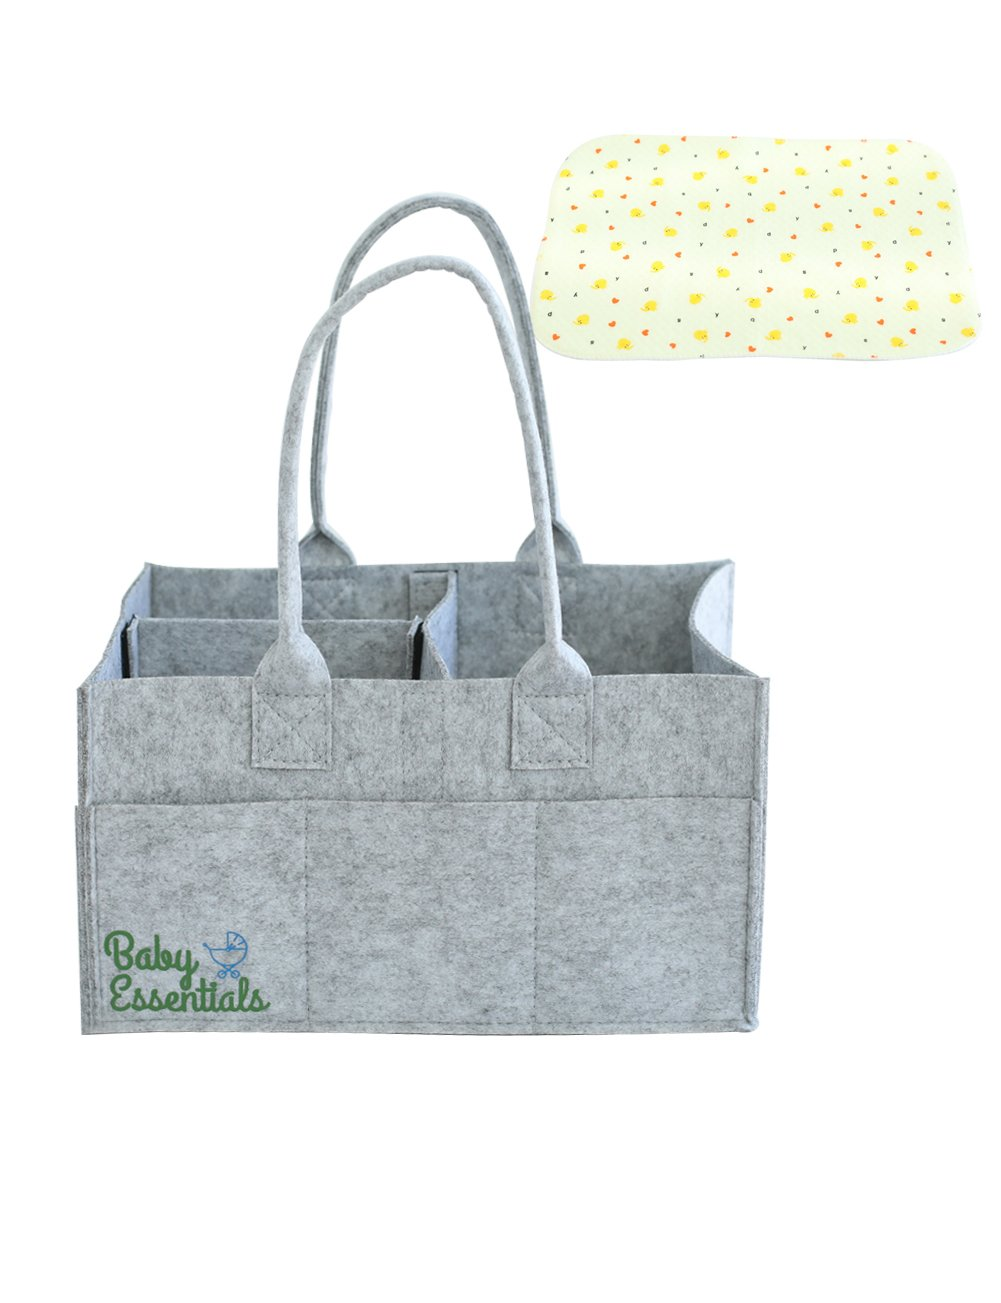 Baby Essentials Diaper Caddy - Nursery Storage Bin and Car Organizer for Diapers and Baby Wipes + FREE Changing Pad